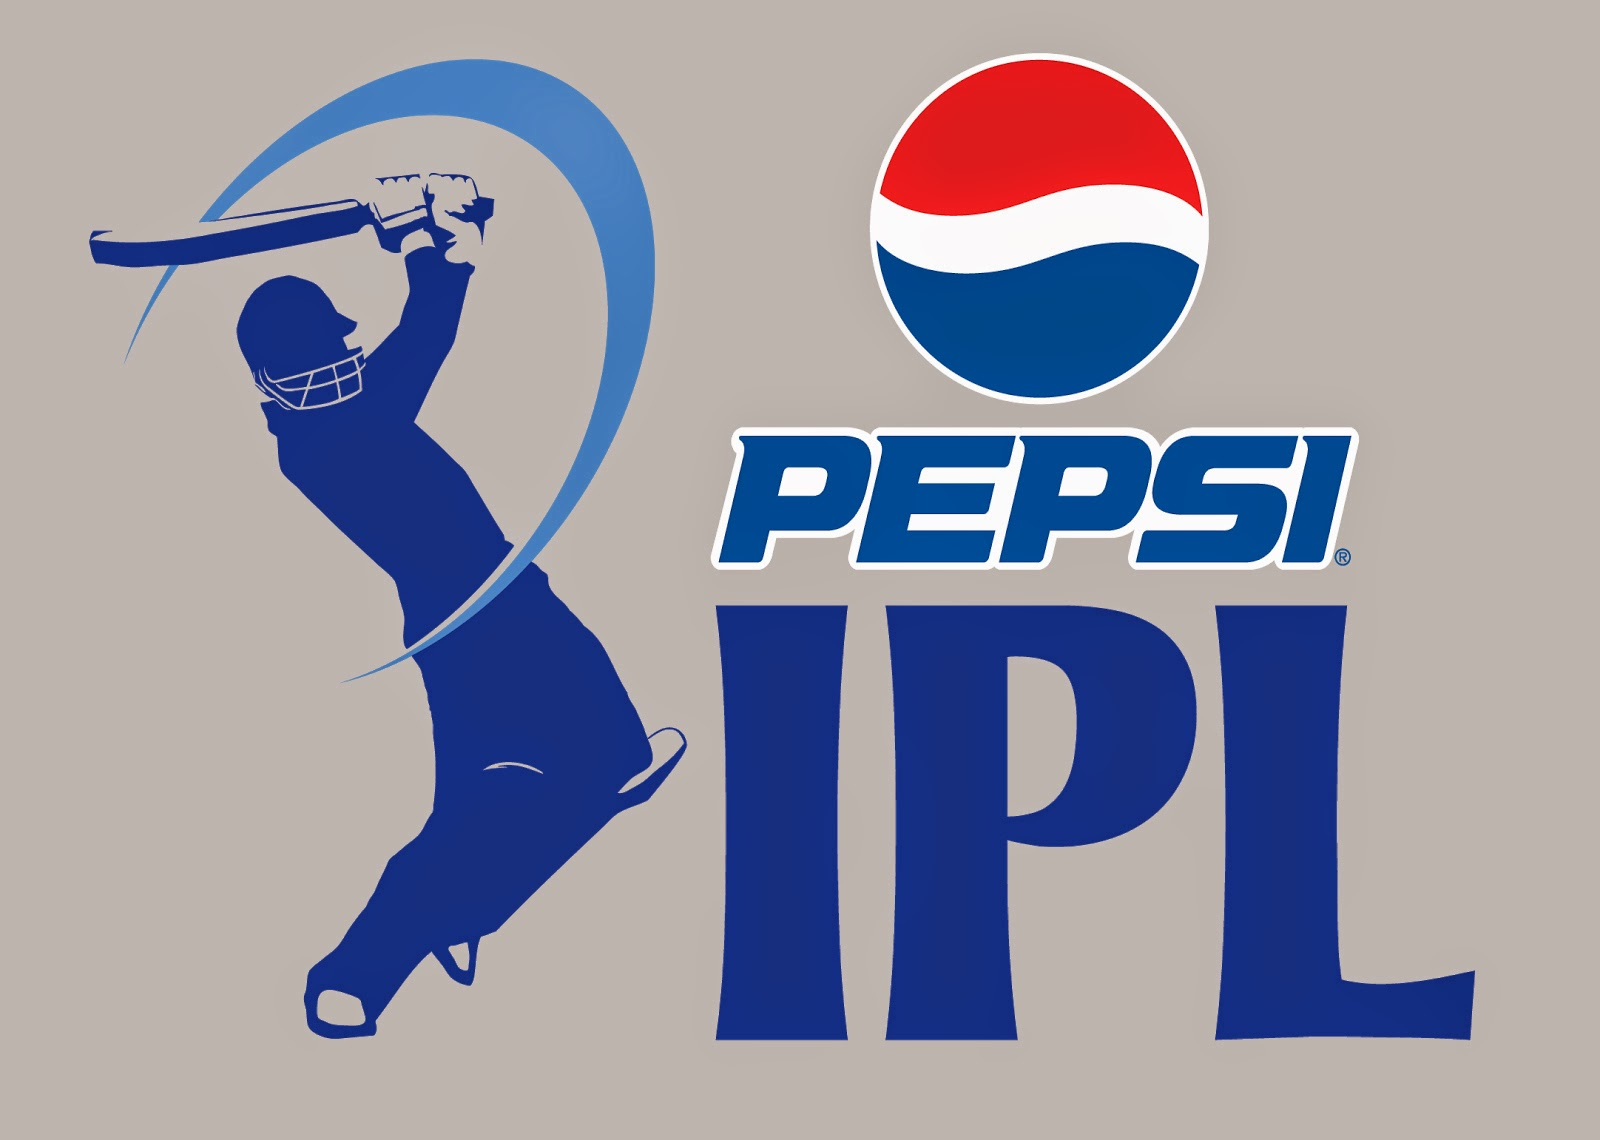 IPL 8 Opening ceremony date, venue and other details